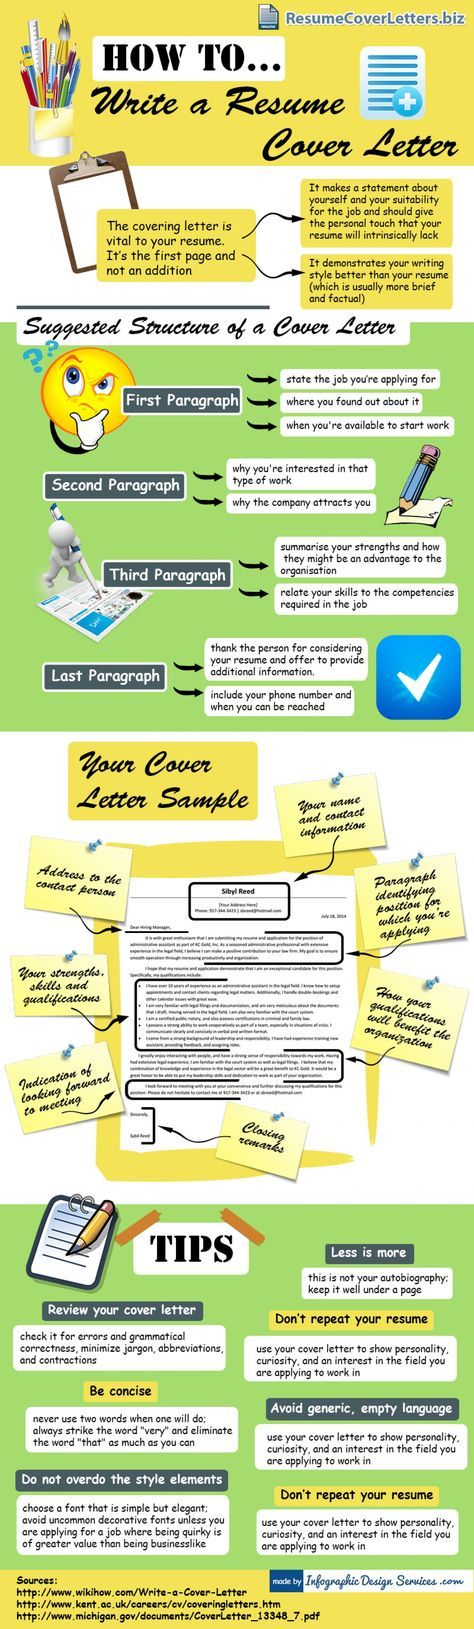 Best 20+ Resume writing tips ideas on Pinterest Cv writing tips - how do i type a resume